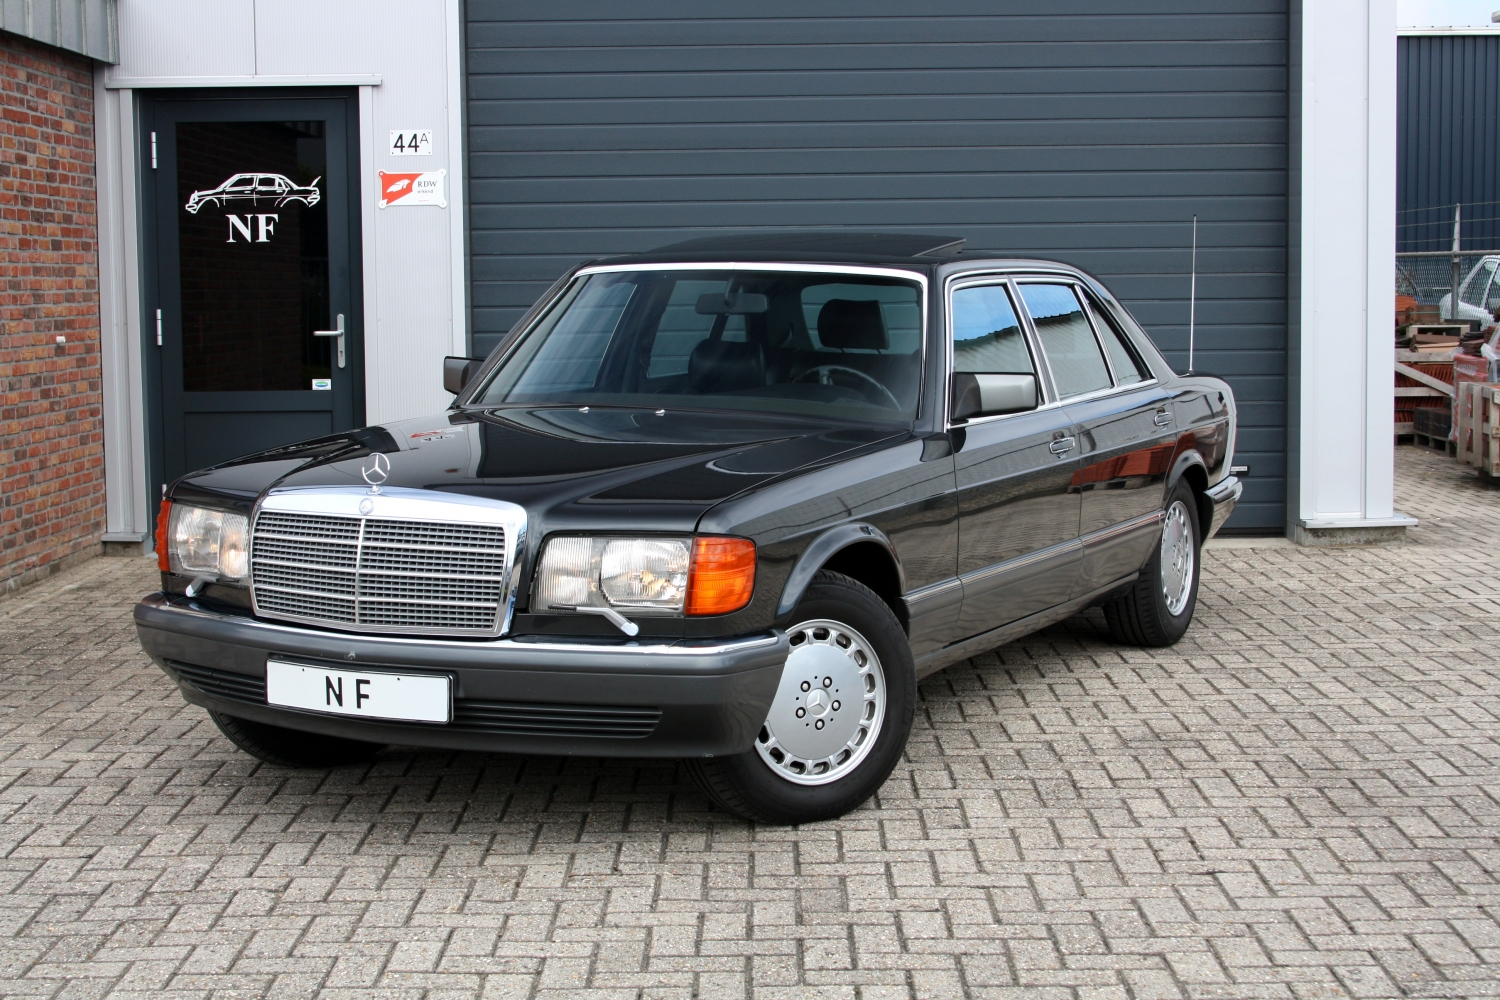 Early V8 Gas Engine Back End Fuel Delivery also goherrmanns moreover Wallpaper 03 together with Classic Mercedes Reviews S Class W126 likewise Wallpapers Mercedes Benz S Klasse W126 1979 91 269051. on benz w126